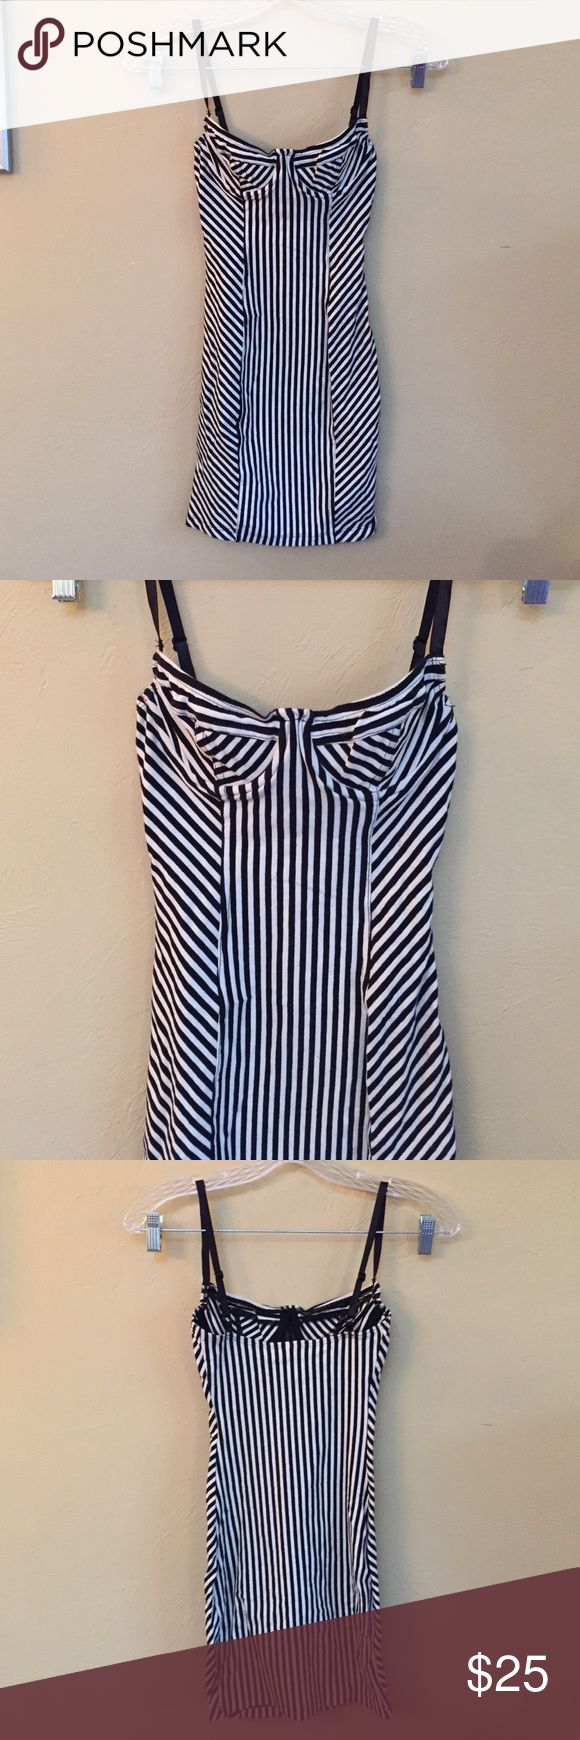 American apparel stripe bodycon dress XS. Good condition. American Apparel Dresses Mini